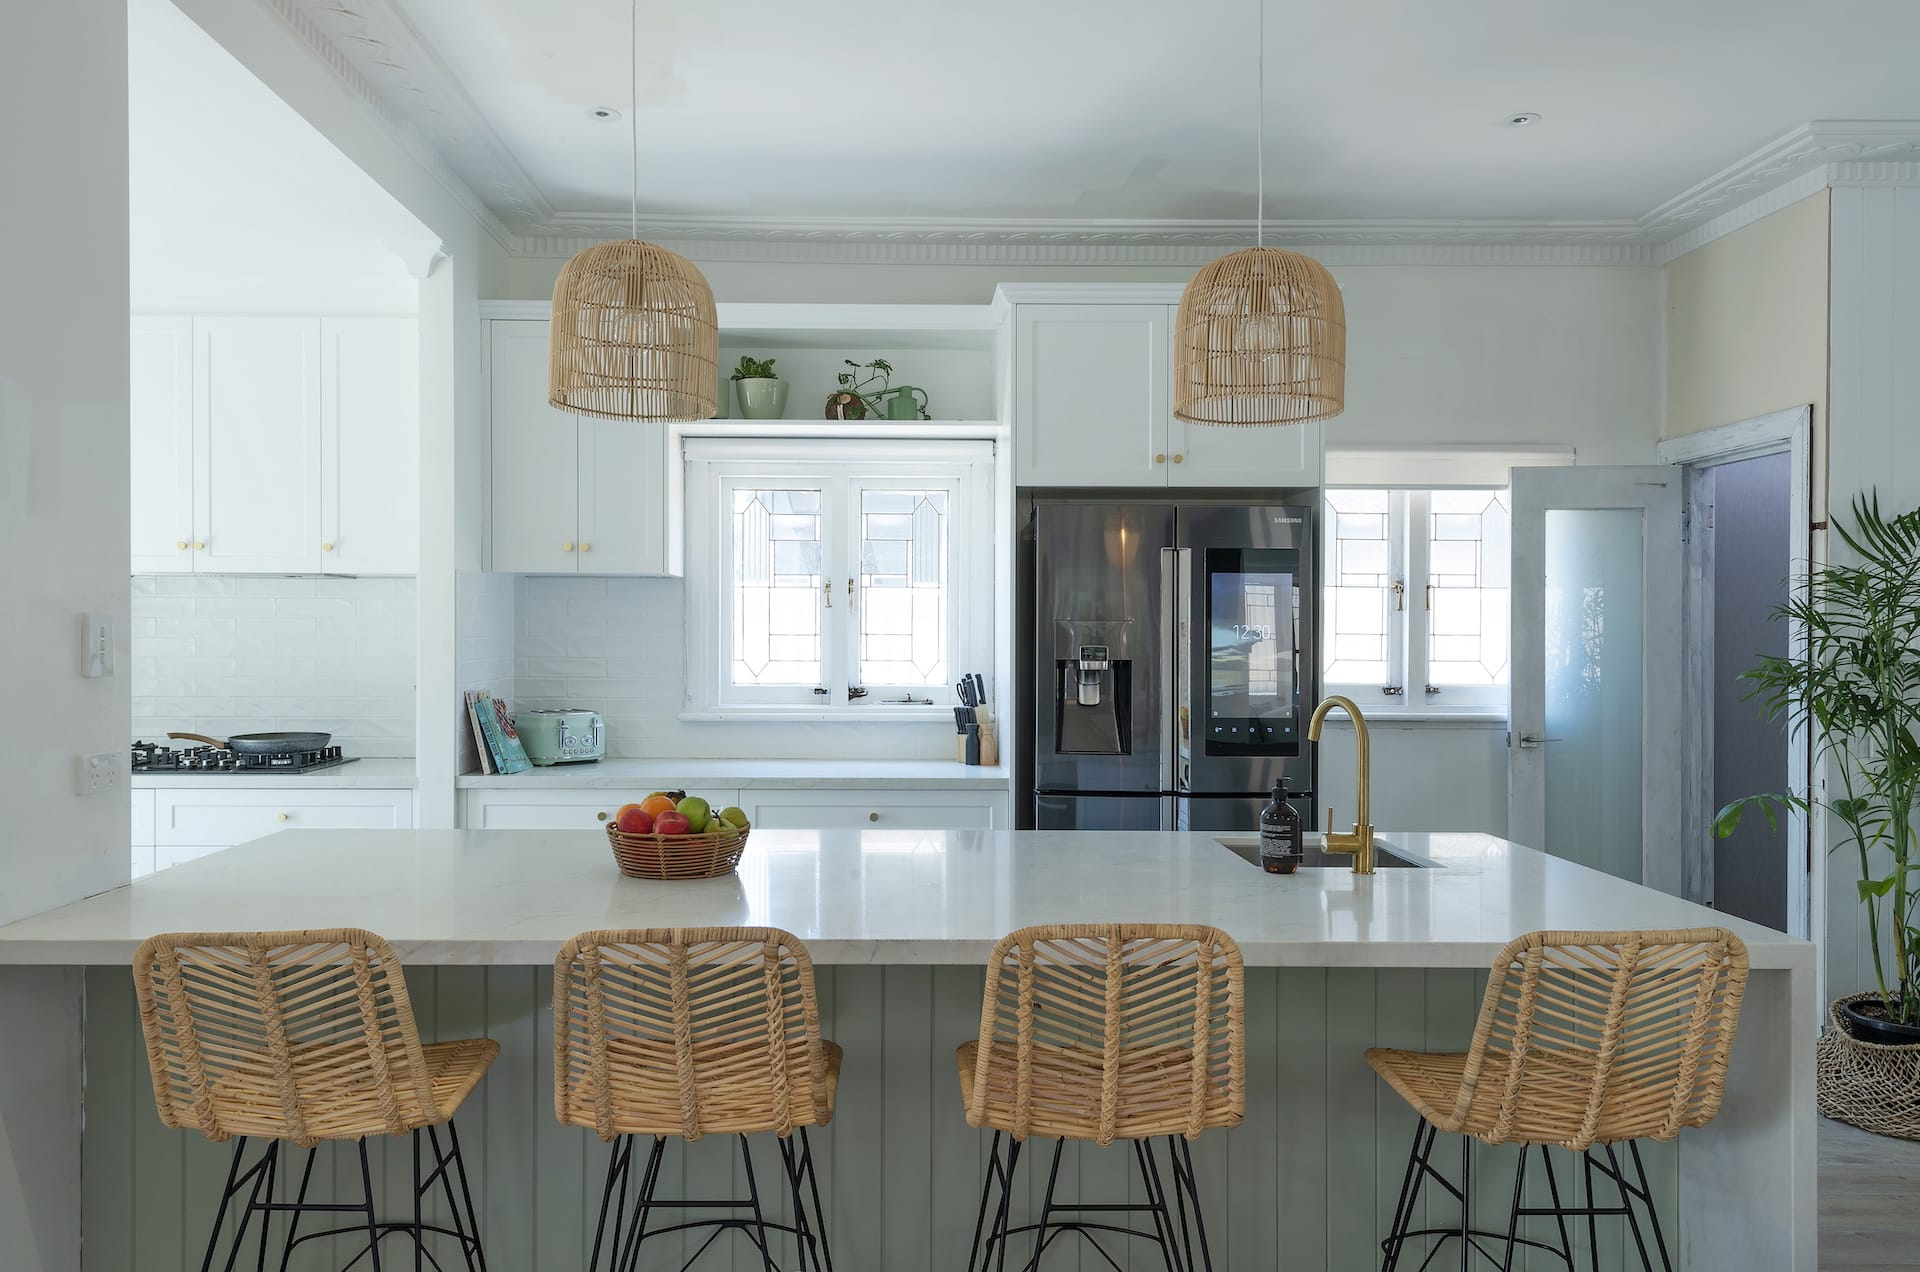 house rules 2020 tanya and dave reveal kitchen with boho pendant lights